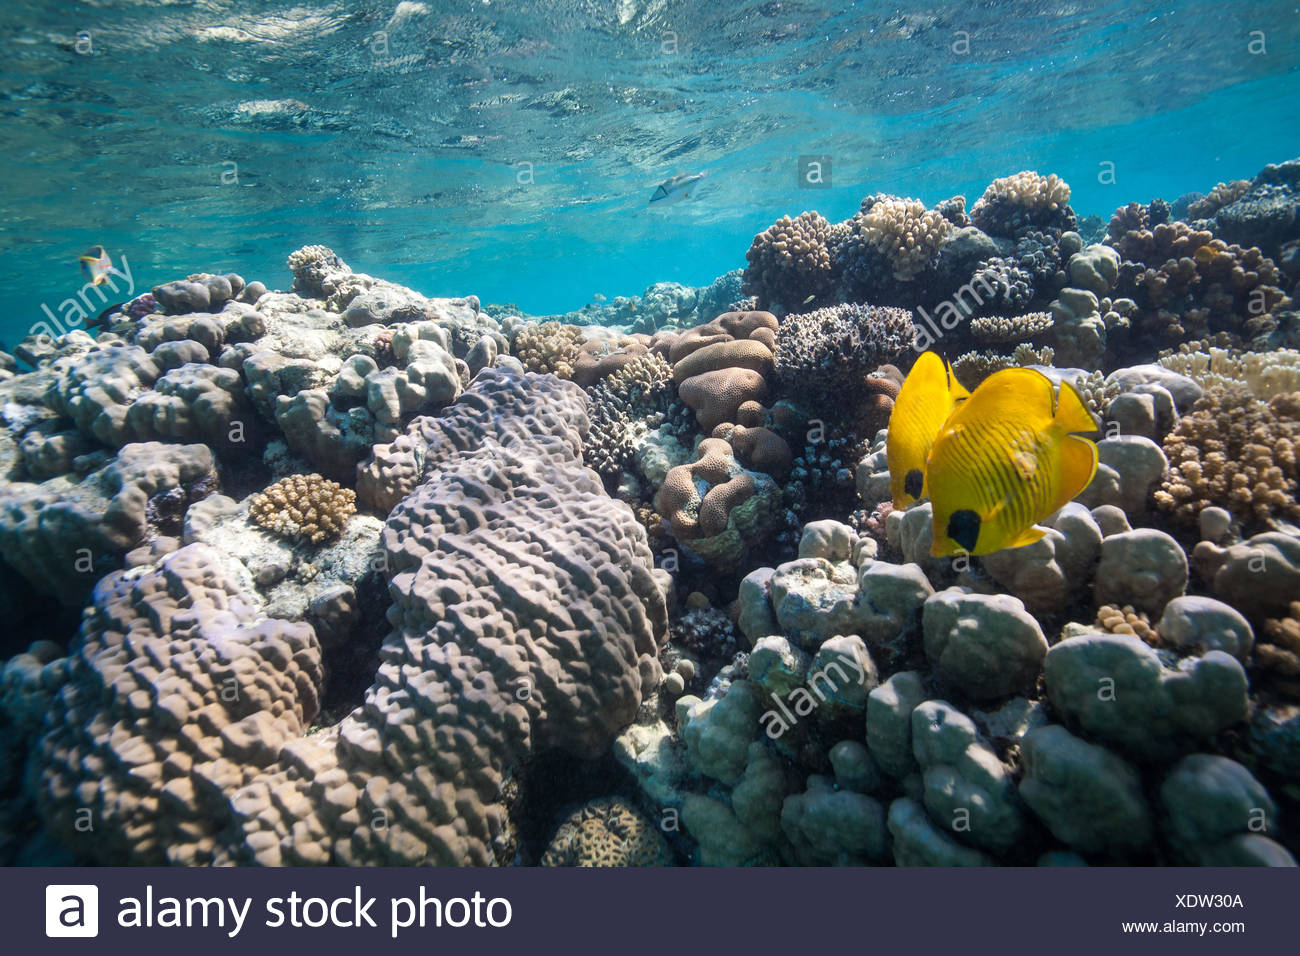 Coral reef - Stock Image